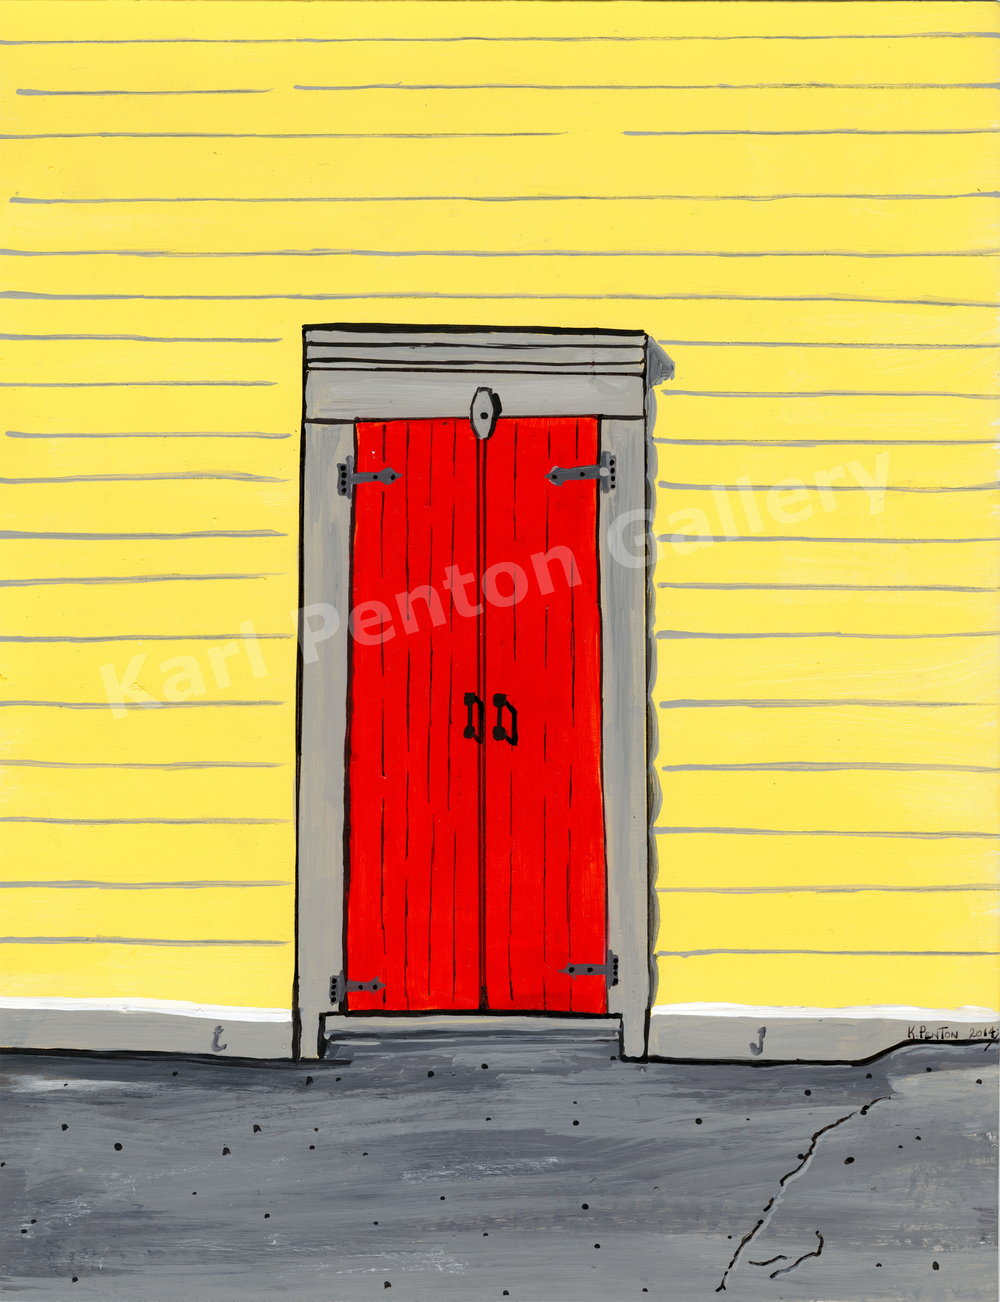 Red Door - On the same building and right next to